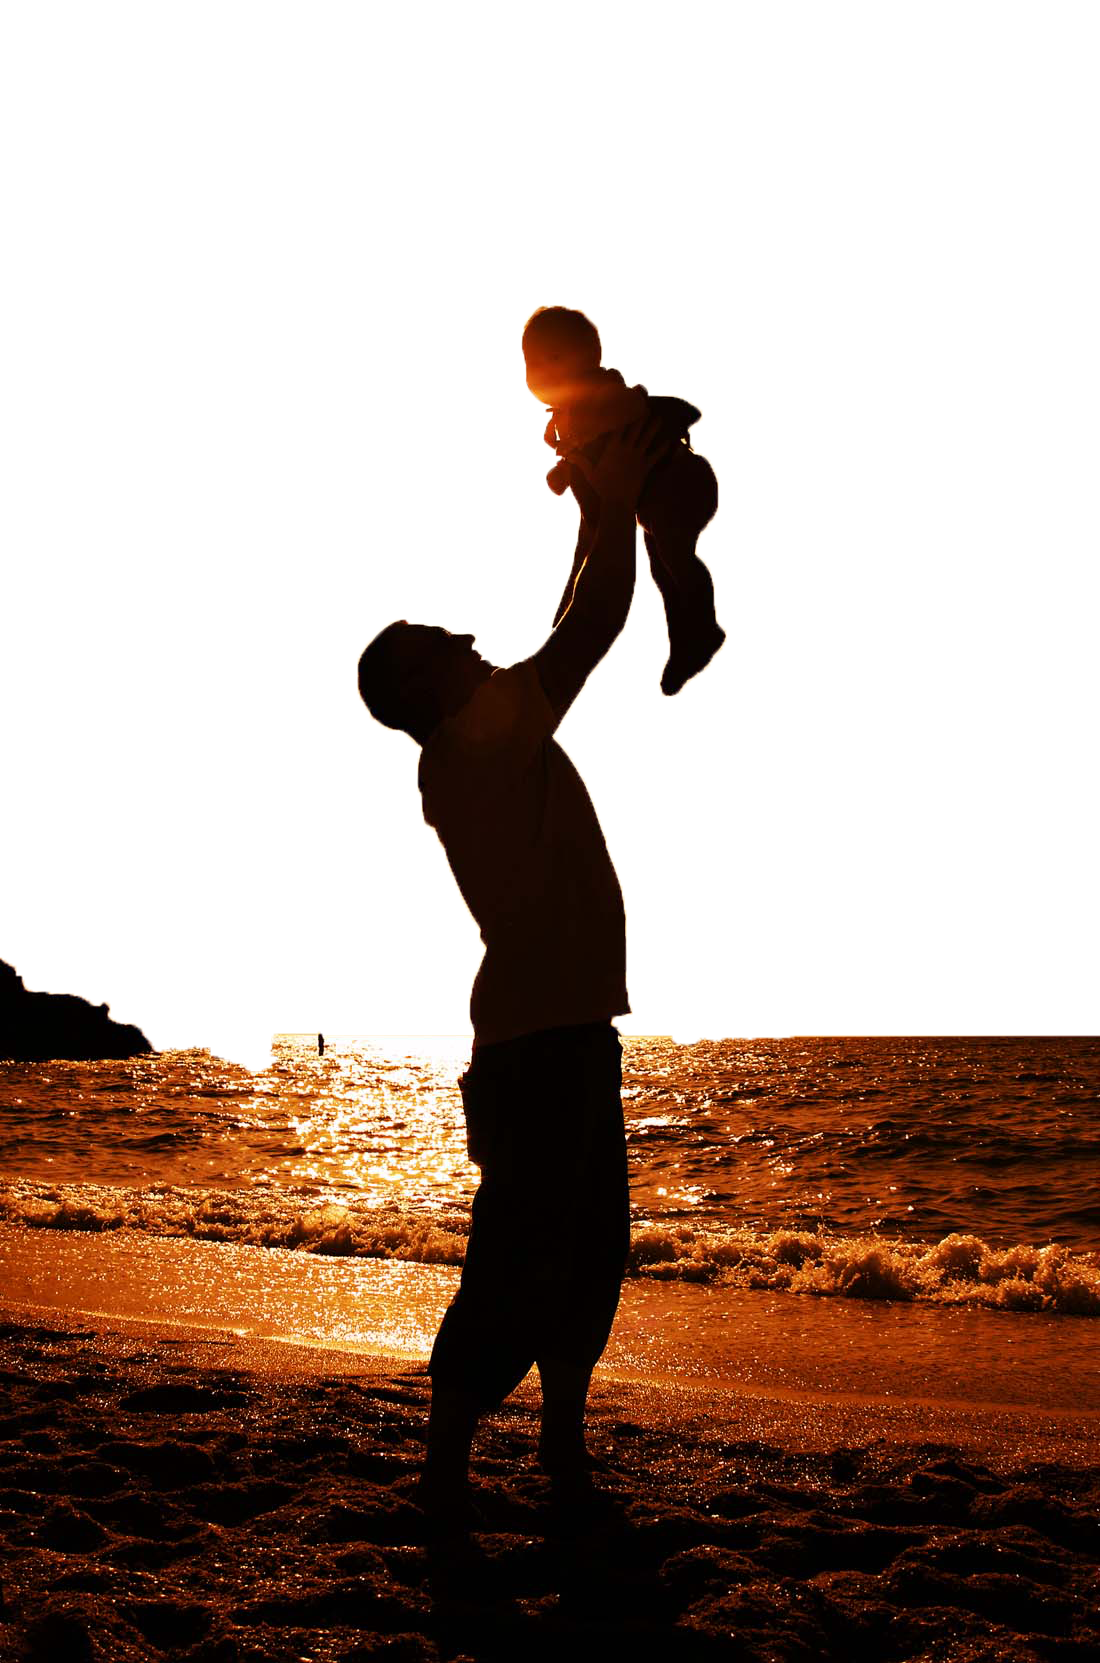 Recreation Silhouette Family Fathers Father Day PNG Image